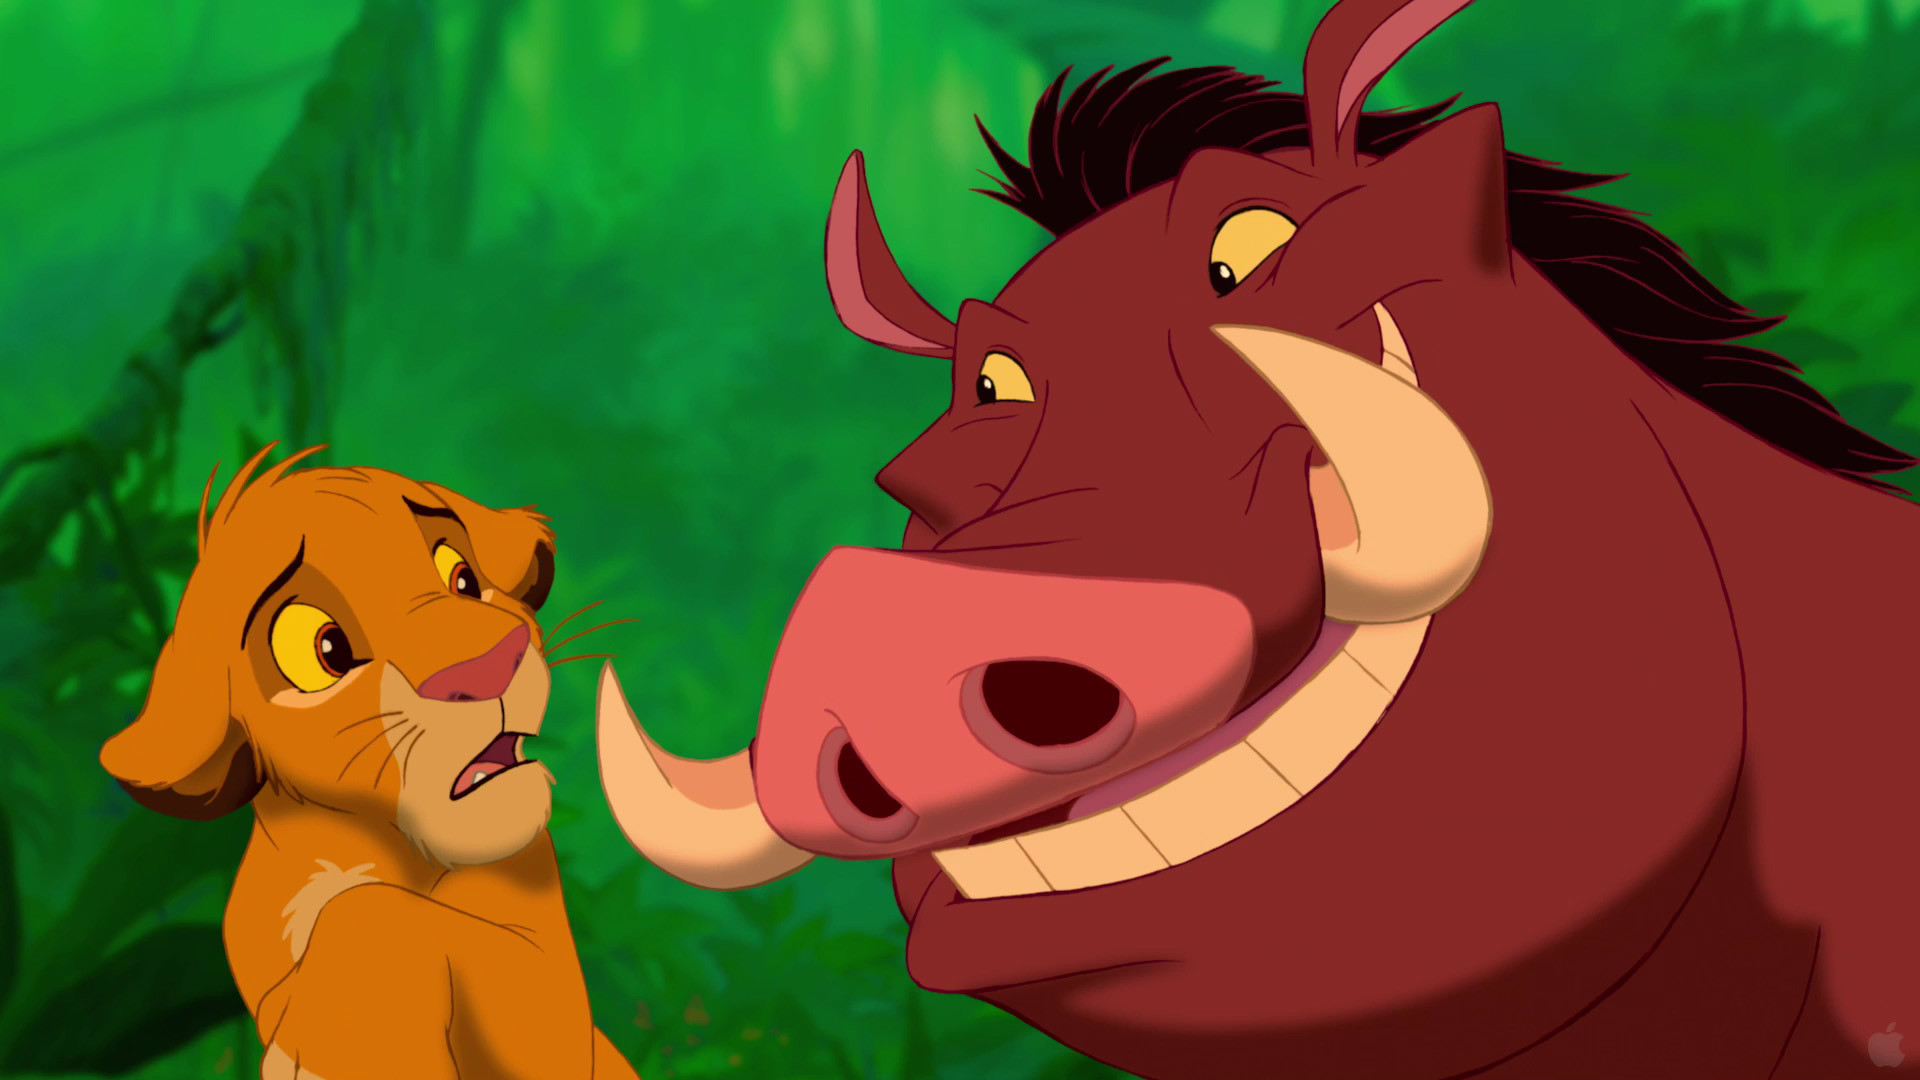 The Lion King - Pumba And Simba , HD Wallpaper & Backgrounds